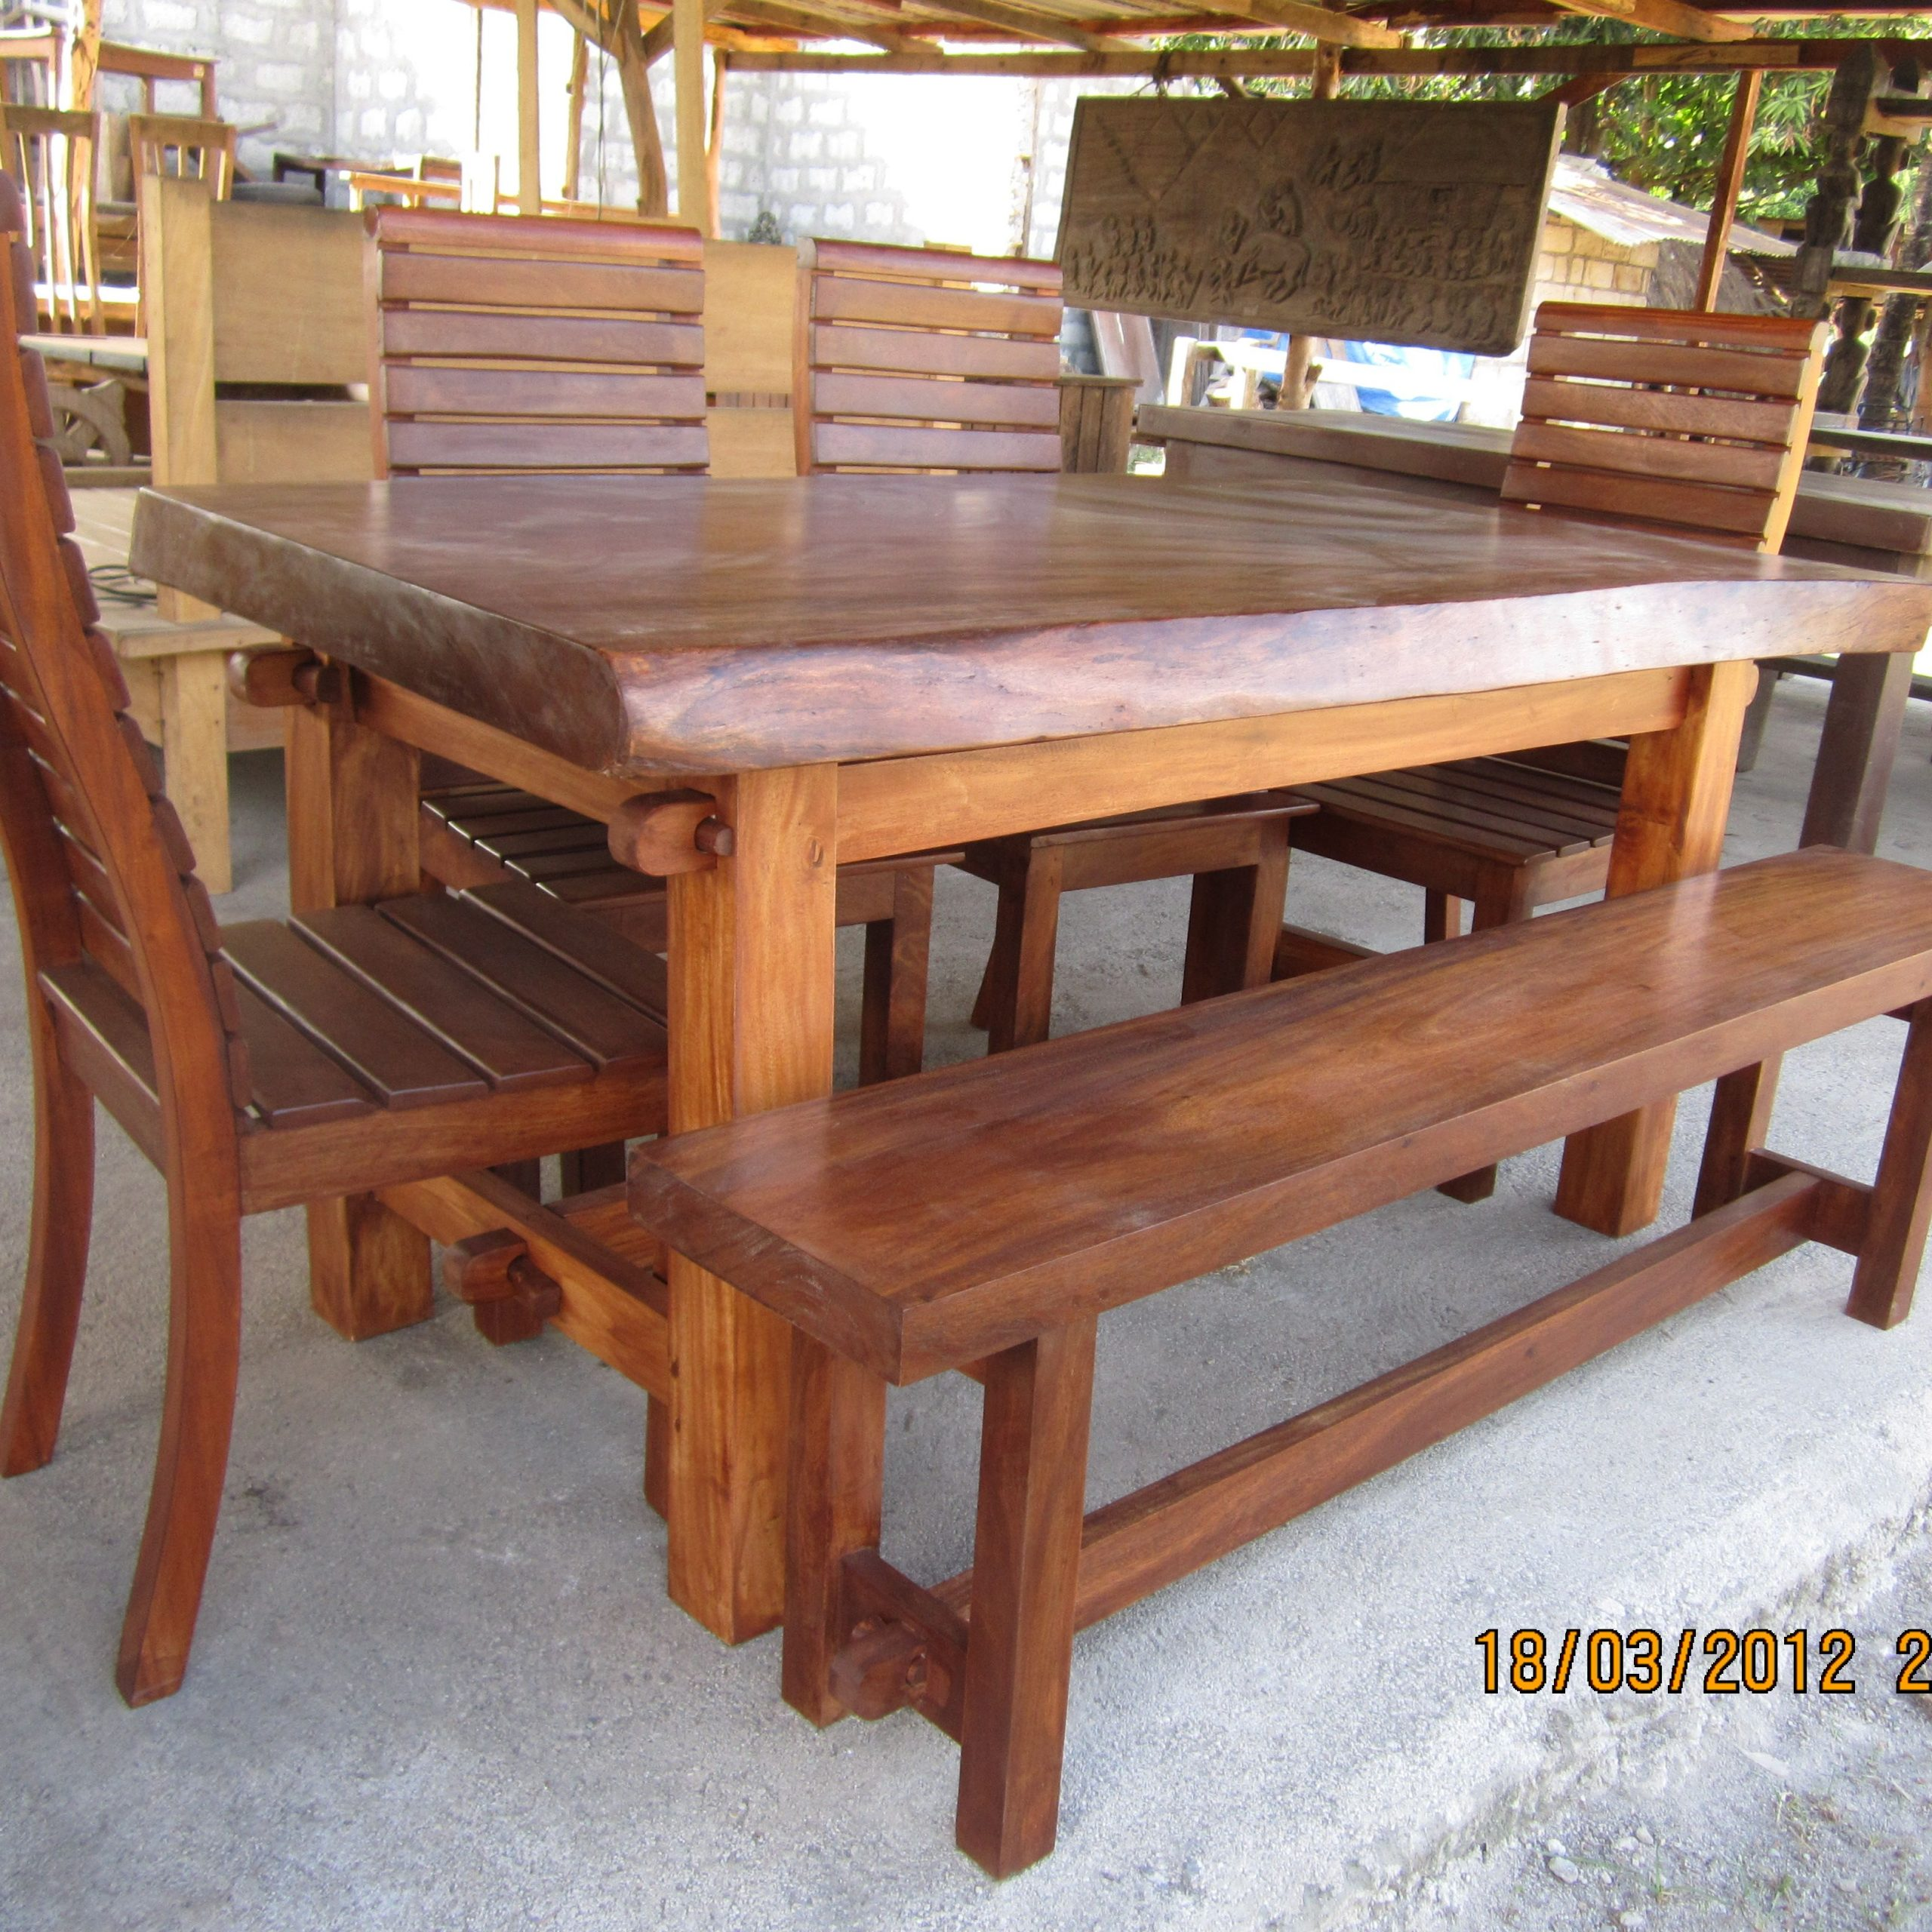 pictures of wooden dining tables and chairs